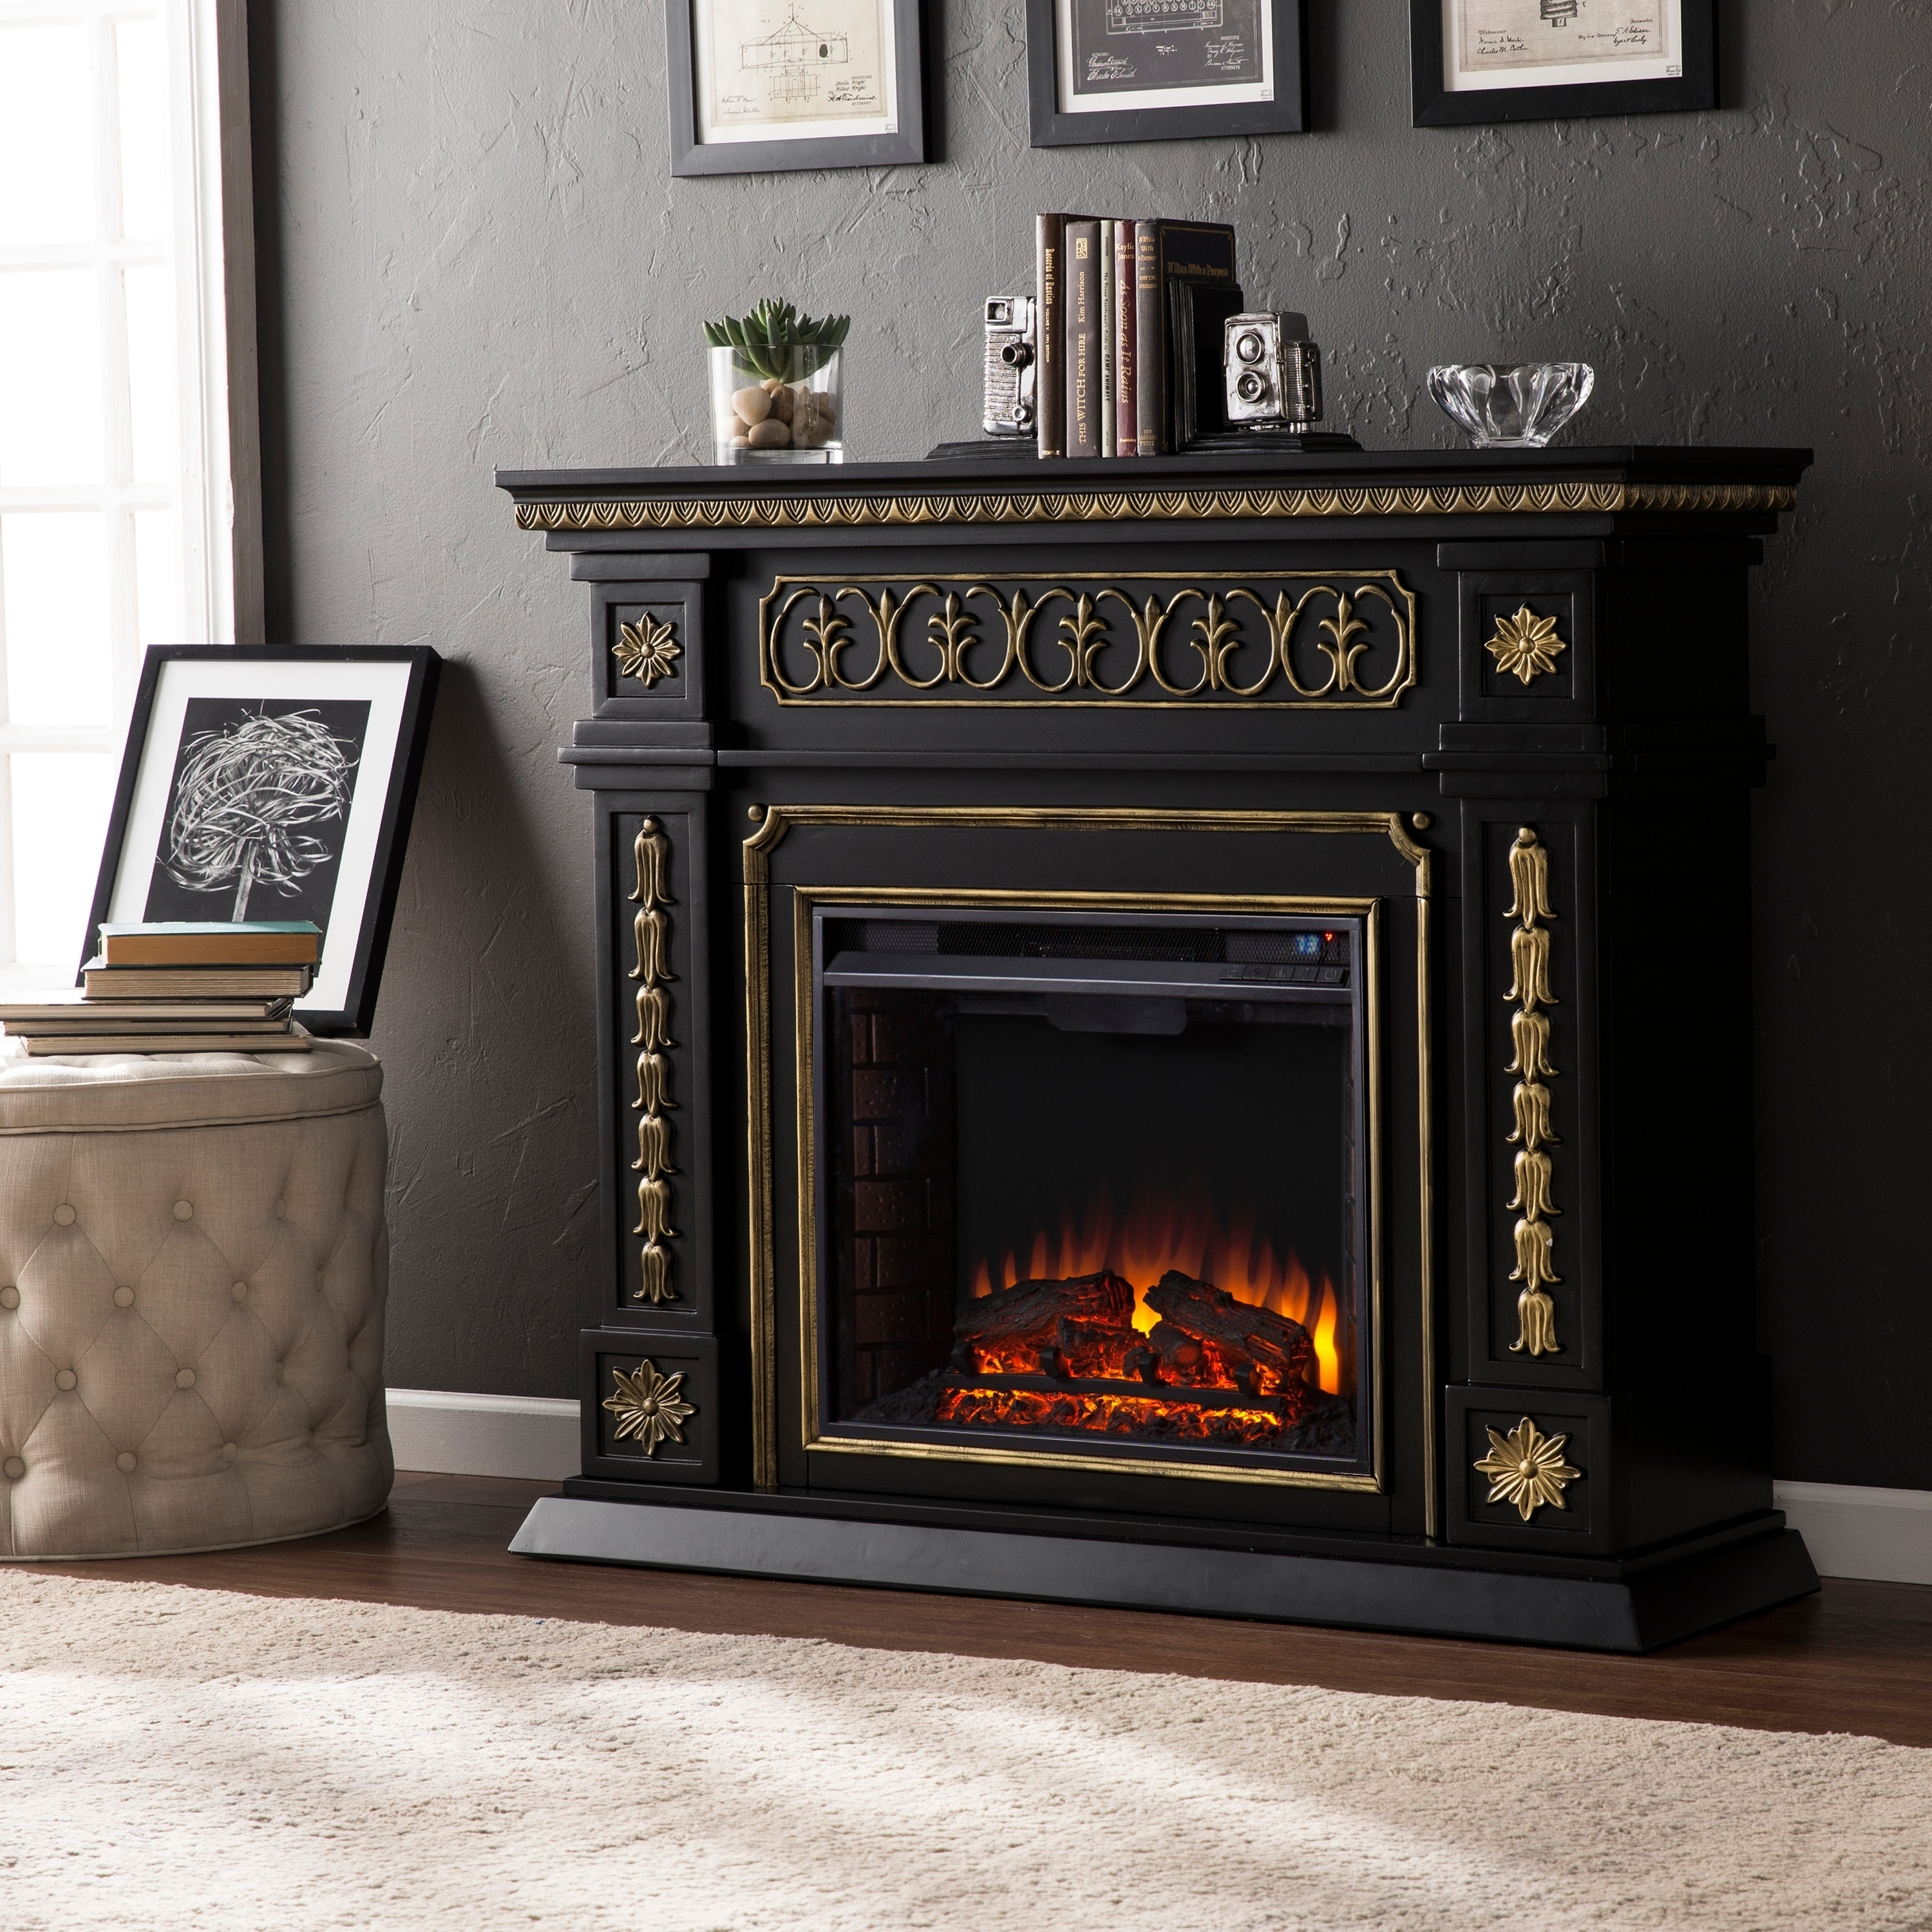 garden electric free fireplace harper store ivory product home shipping blvd gilbert on